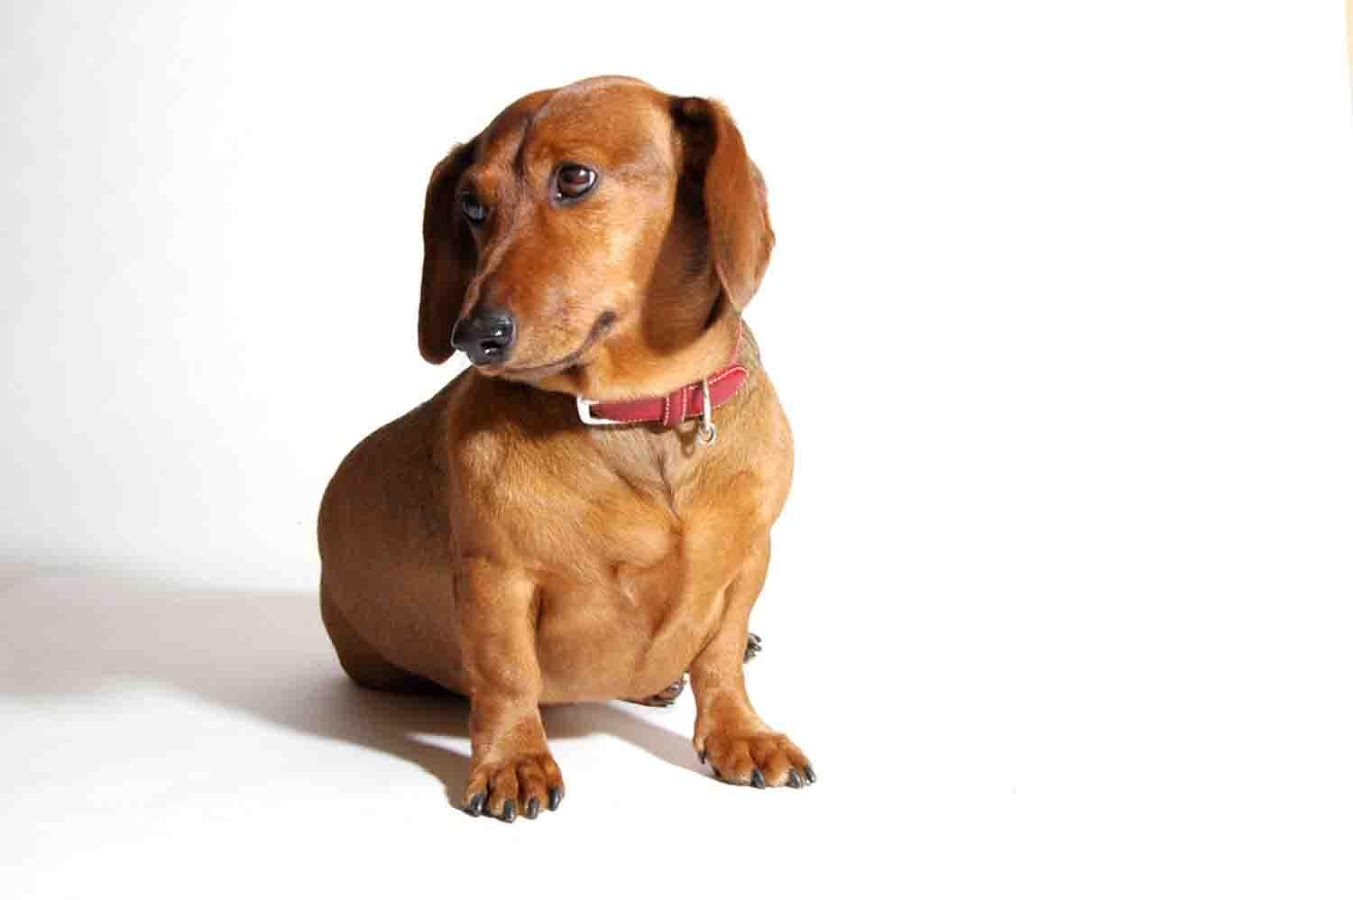 Weiner Dog Wallpaper Android Apps on Google Play 1353x900